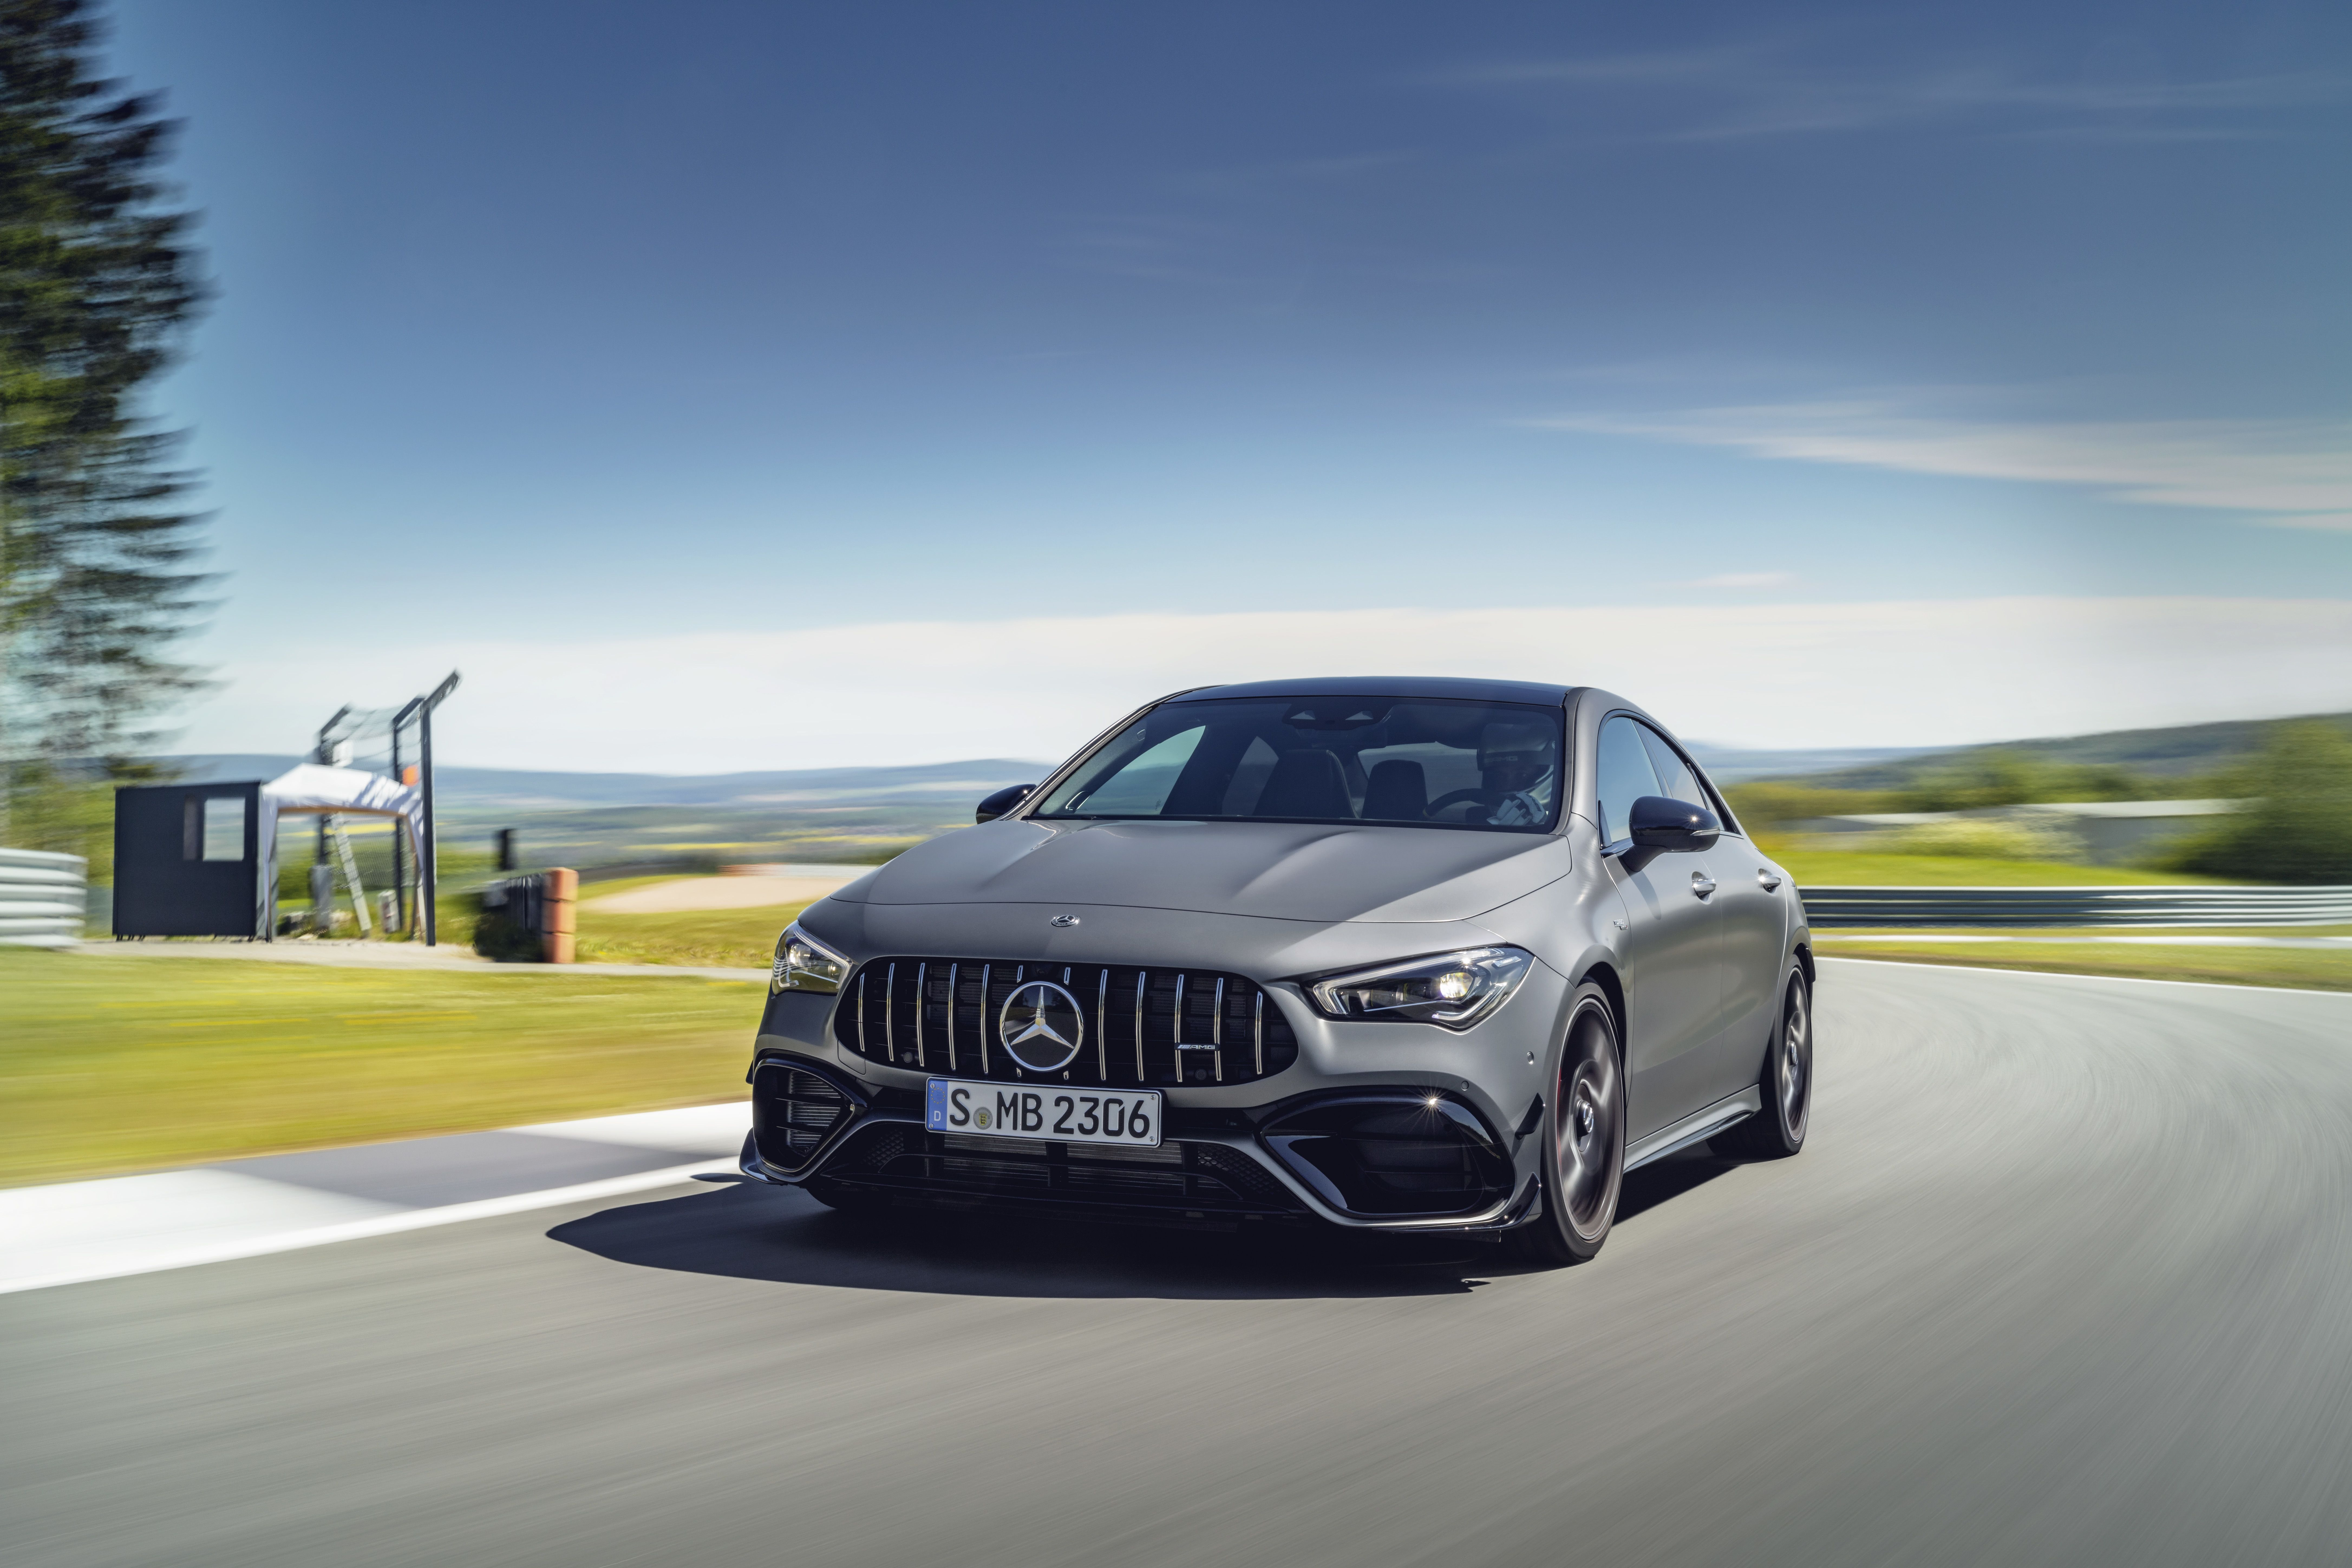 Mercedes muscles up with debut of AMG-powered CLA 45 sedan